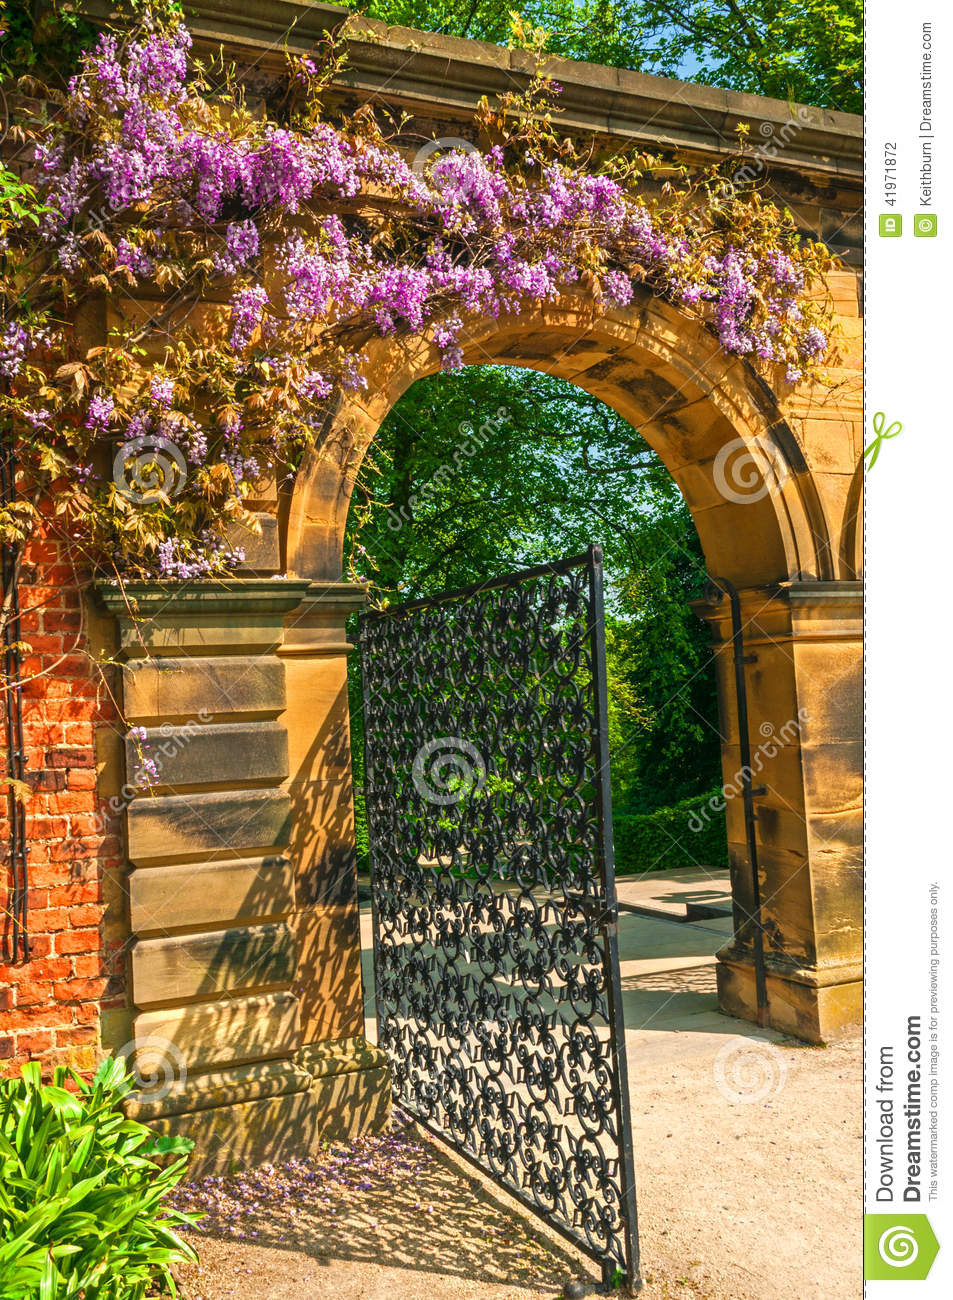 Garden stone arched gateway surrounded by flowers stock for Garden gateway